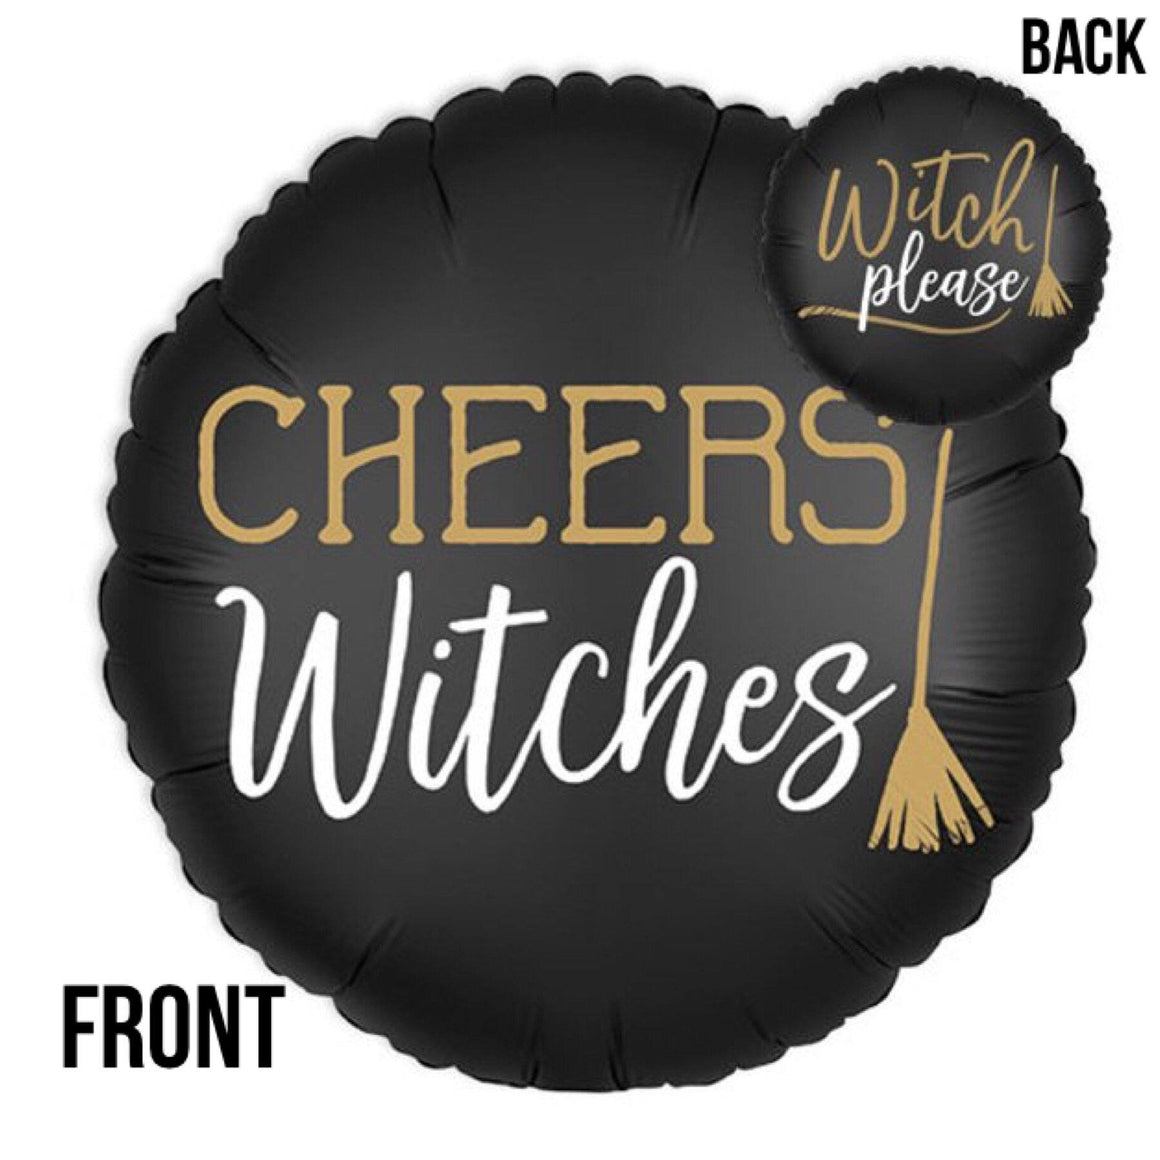 BALLOONS - CHEERS WITCHES 2-SIDED, Balloons, Anagram - Bon + Co. Party Studio